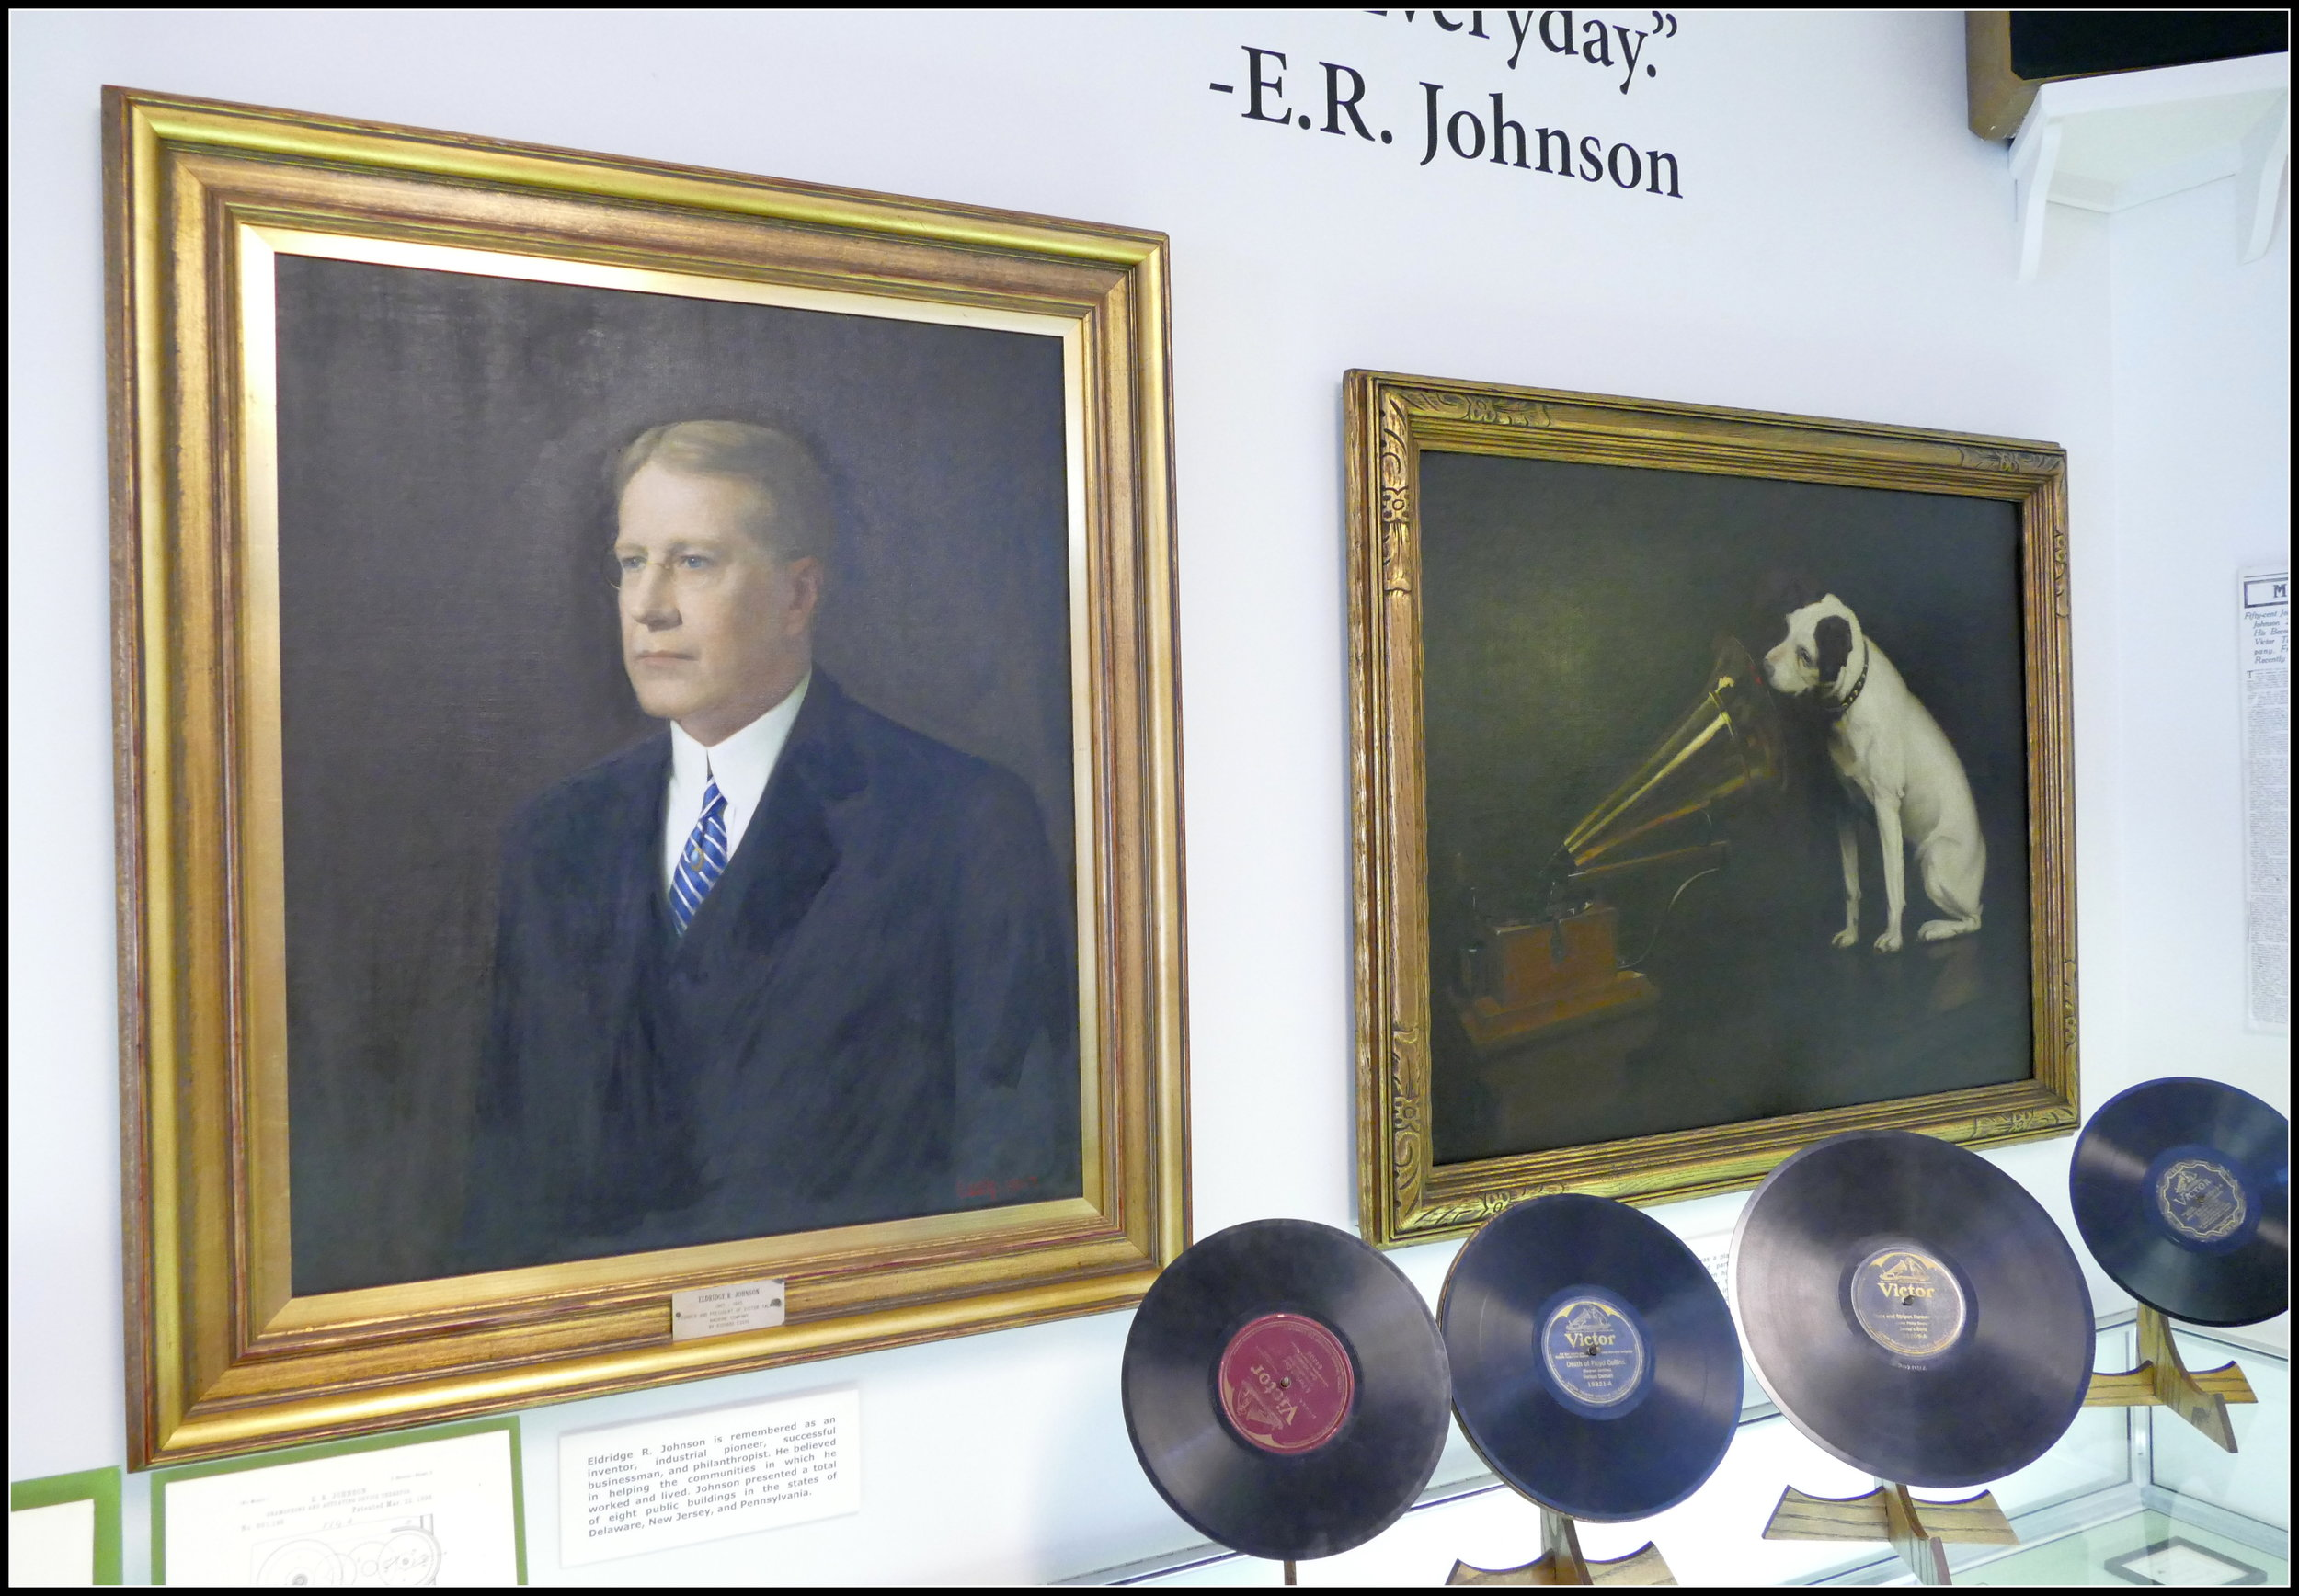 Johnson created a multi-million dollar company which was later sold to RCA Victor.